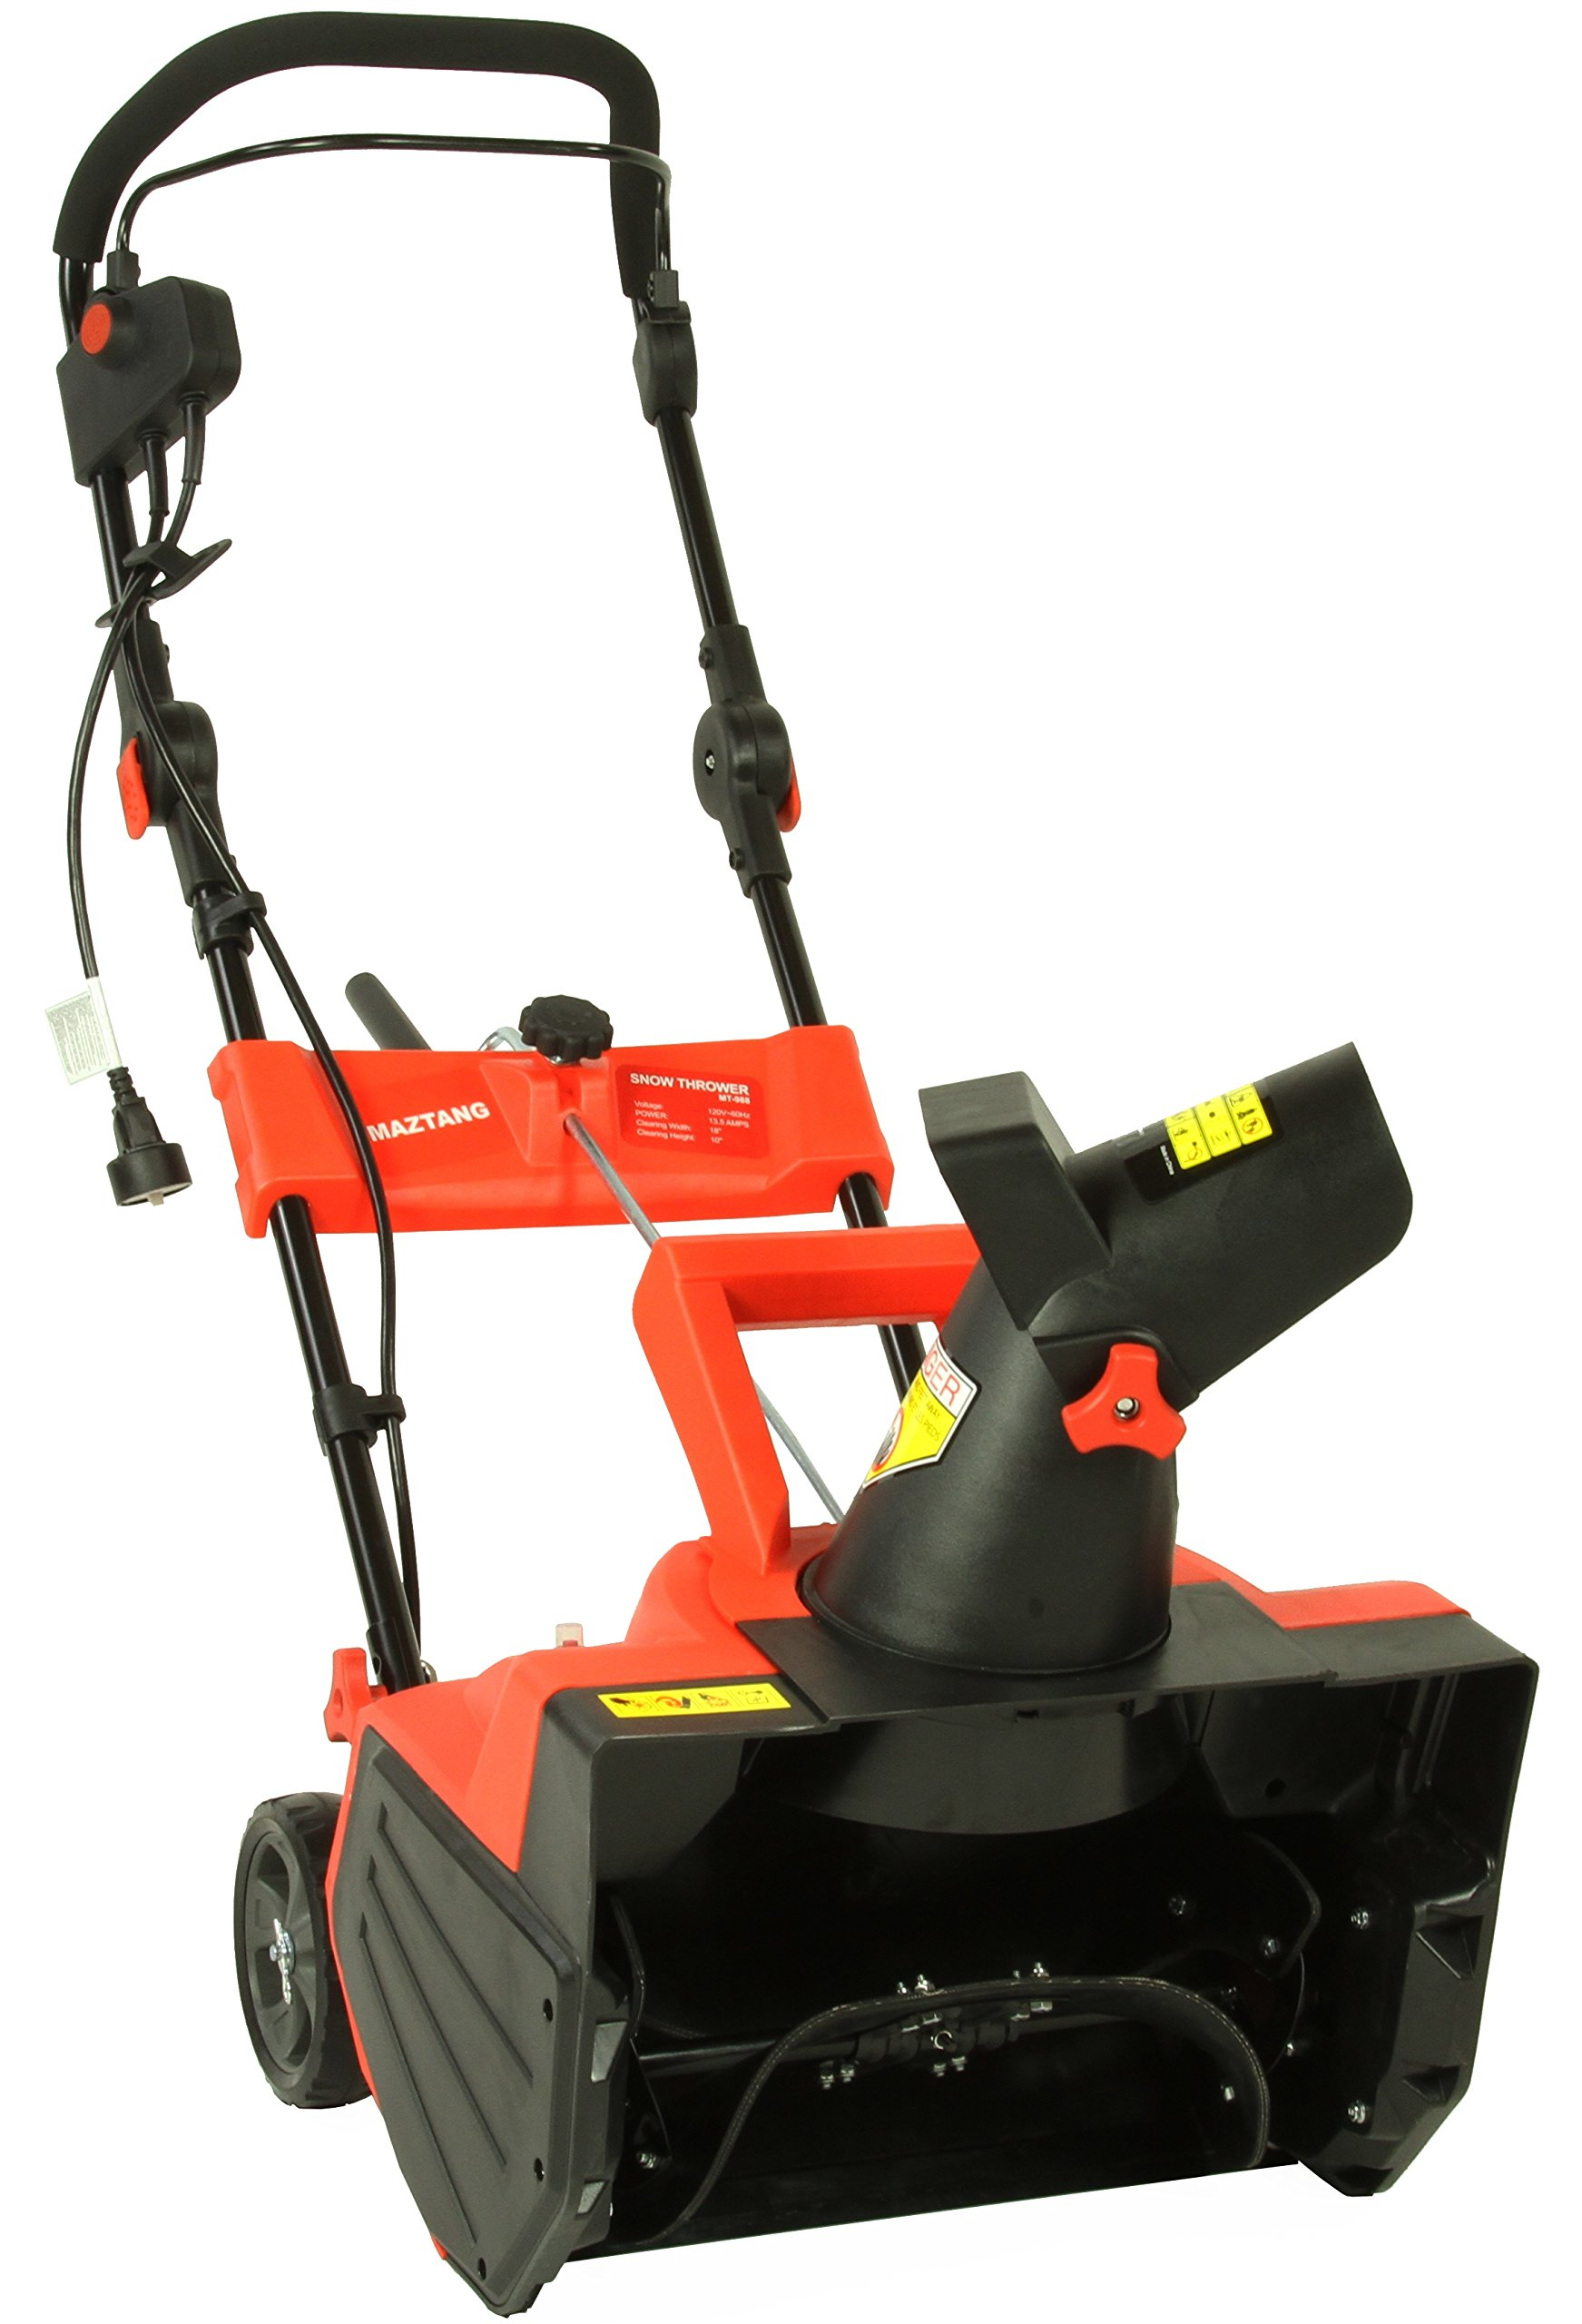 Maztang MT-988 13A Electric Snow Blower, 18''